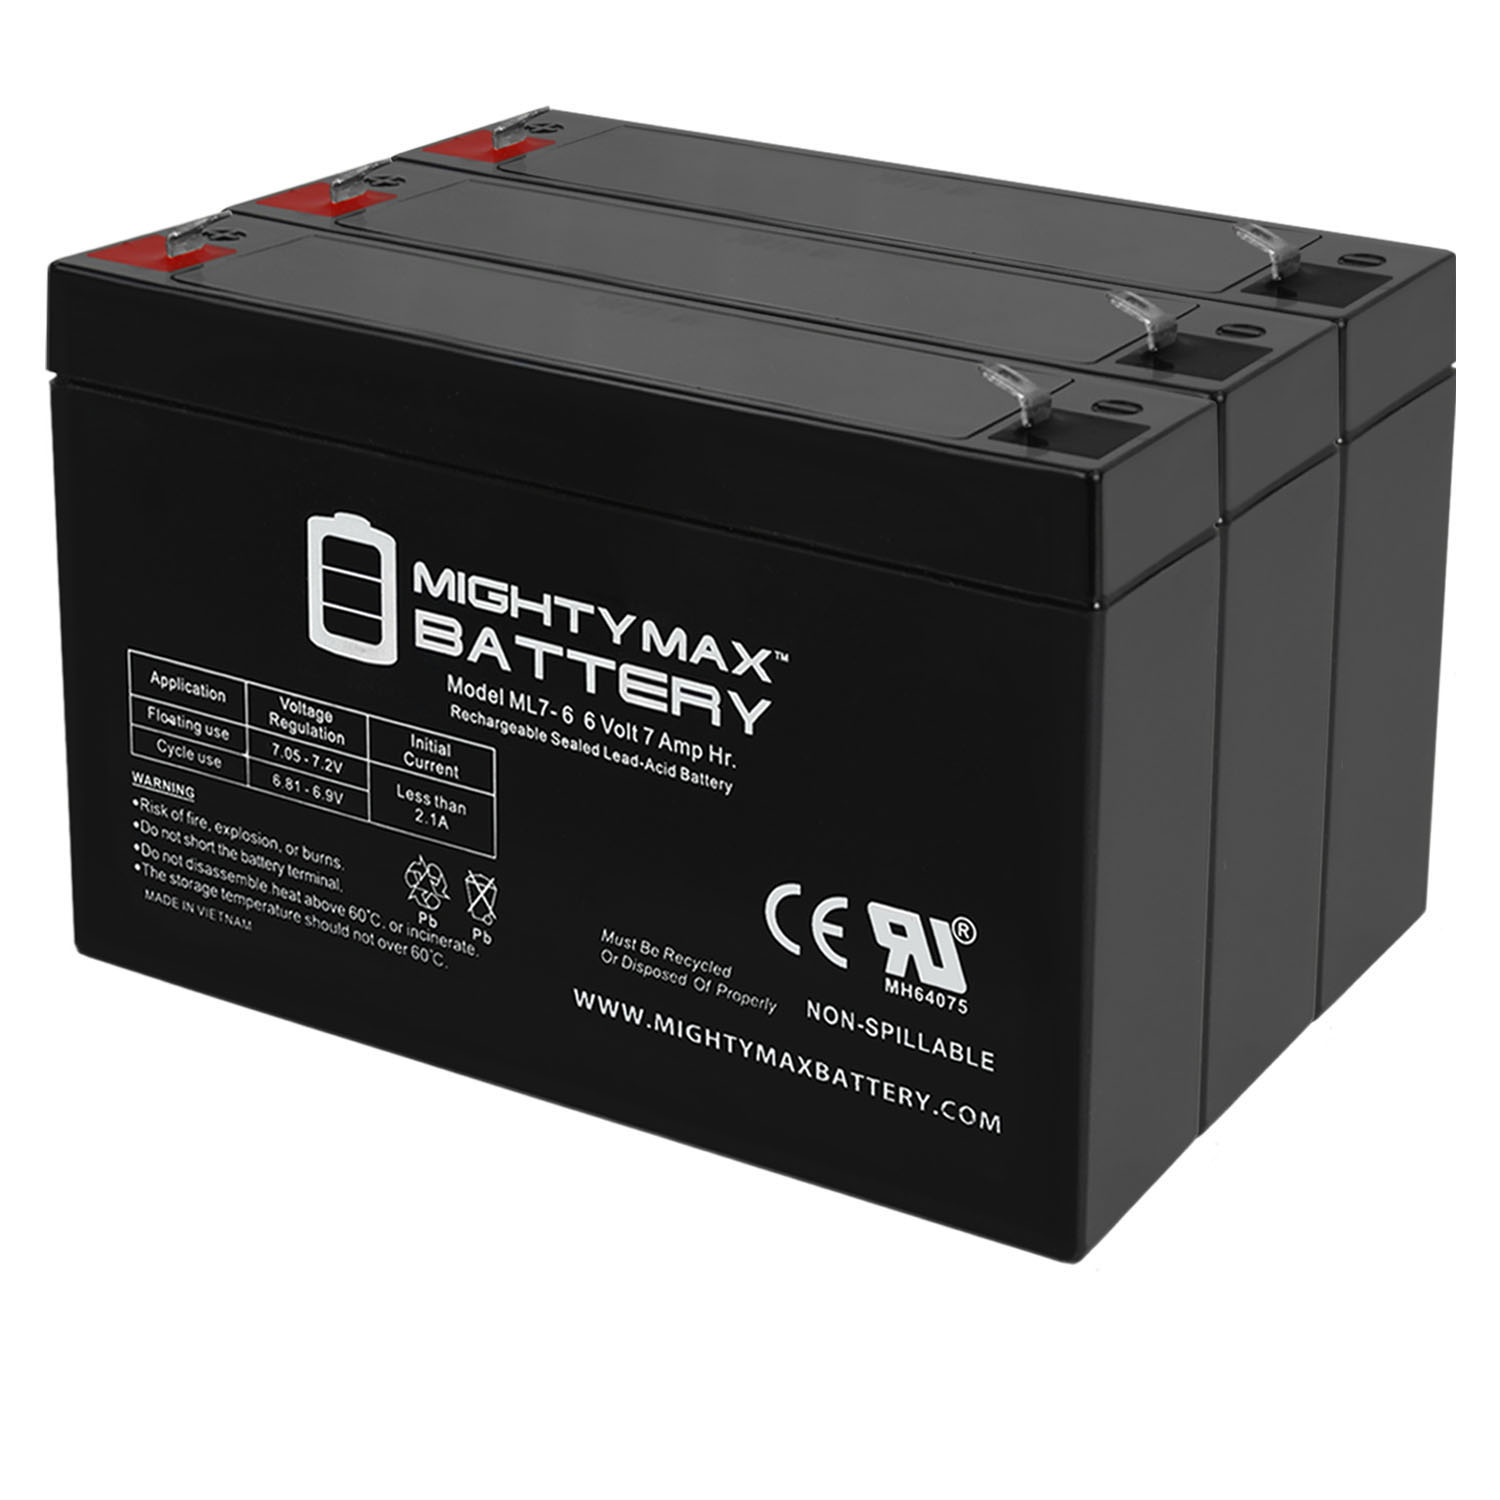 6V 7Ah SLA Replacement Battery for Emergi-Lite AGI5HP - 3 Pack